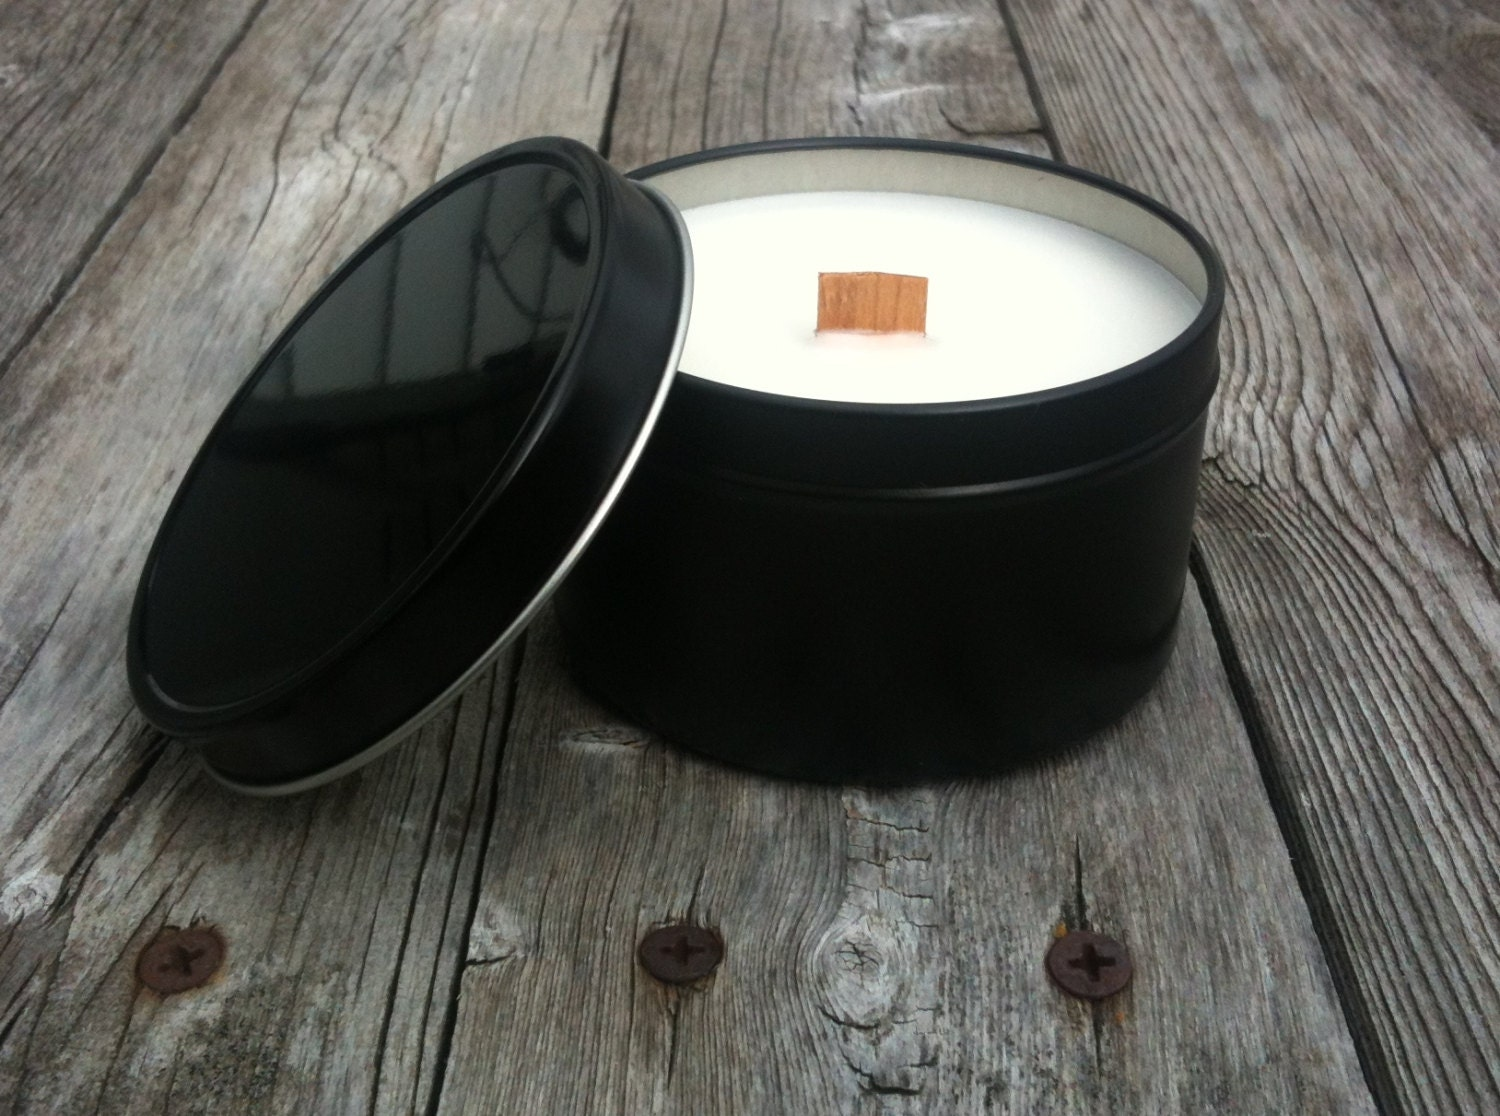 Wood Wick Soy Candle Sleek Black Tin Choose your Scent 8 ounce Rustic - SandyLandStudio